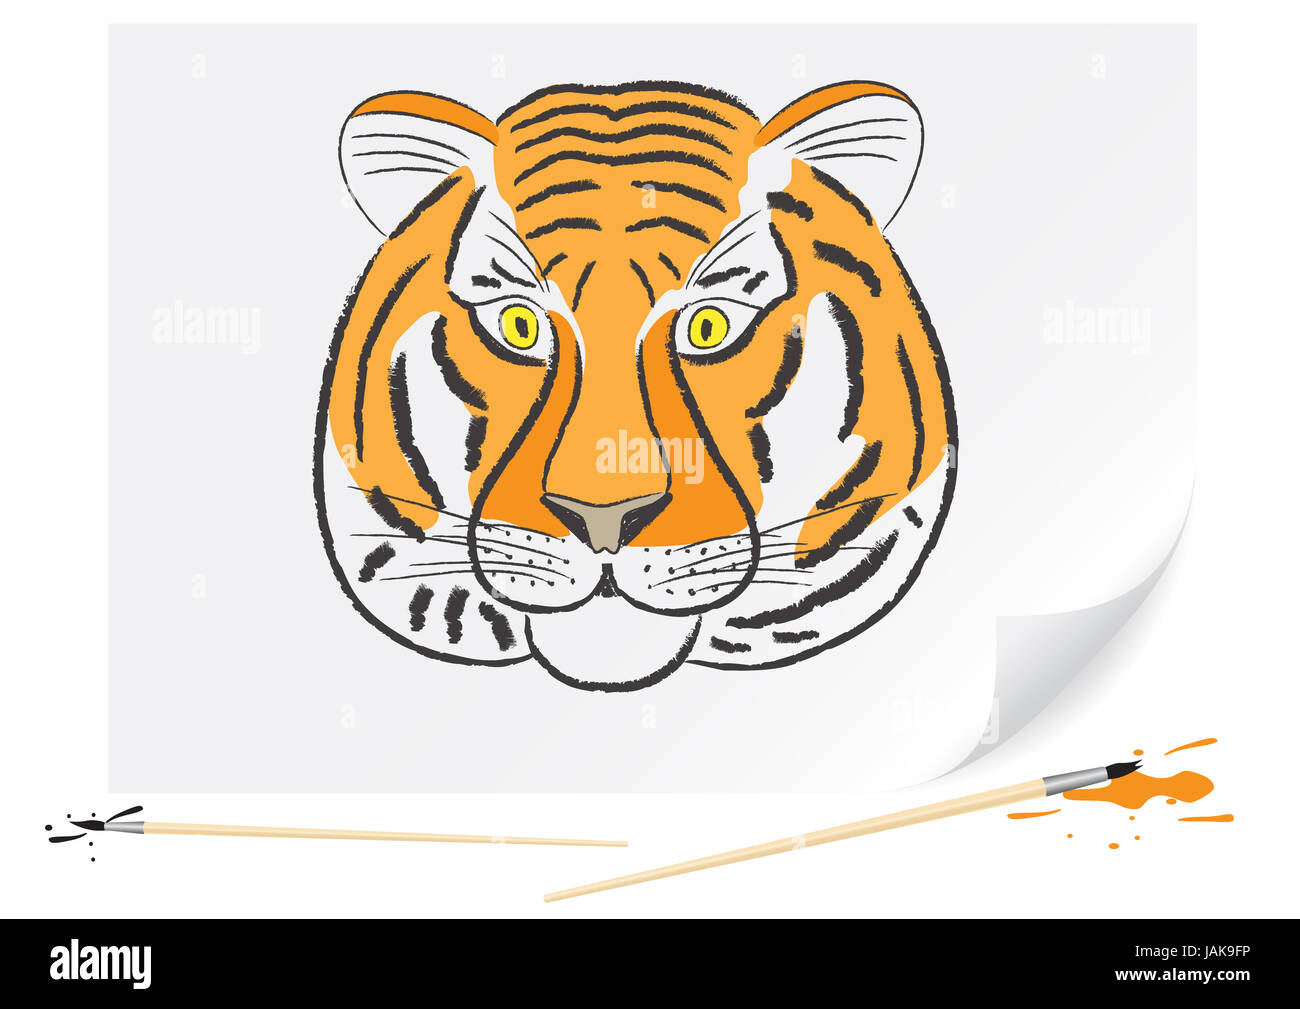 Children drawing of a tiger a brush paints on a paper - Stock Image